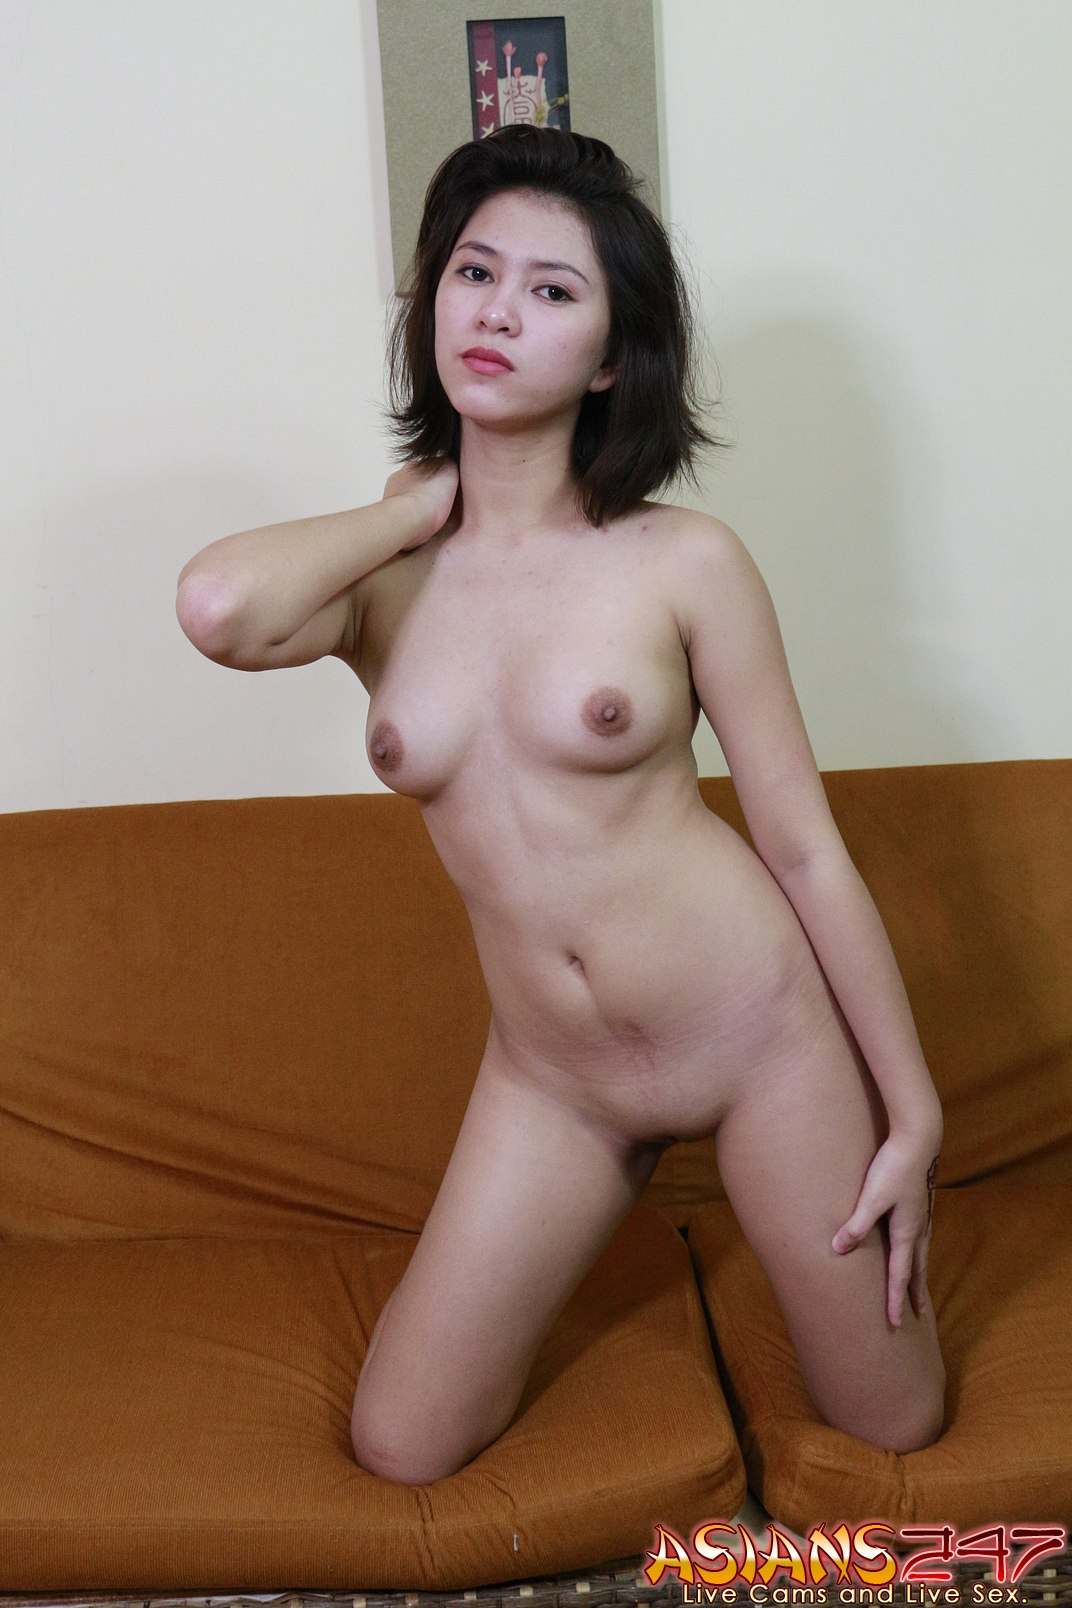 Asians 247 - Sexy Rebecca getting nude for you live